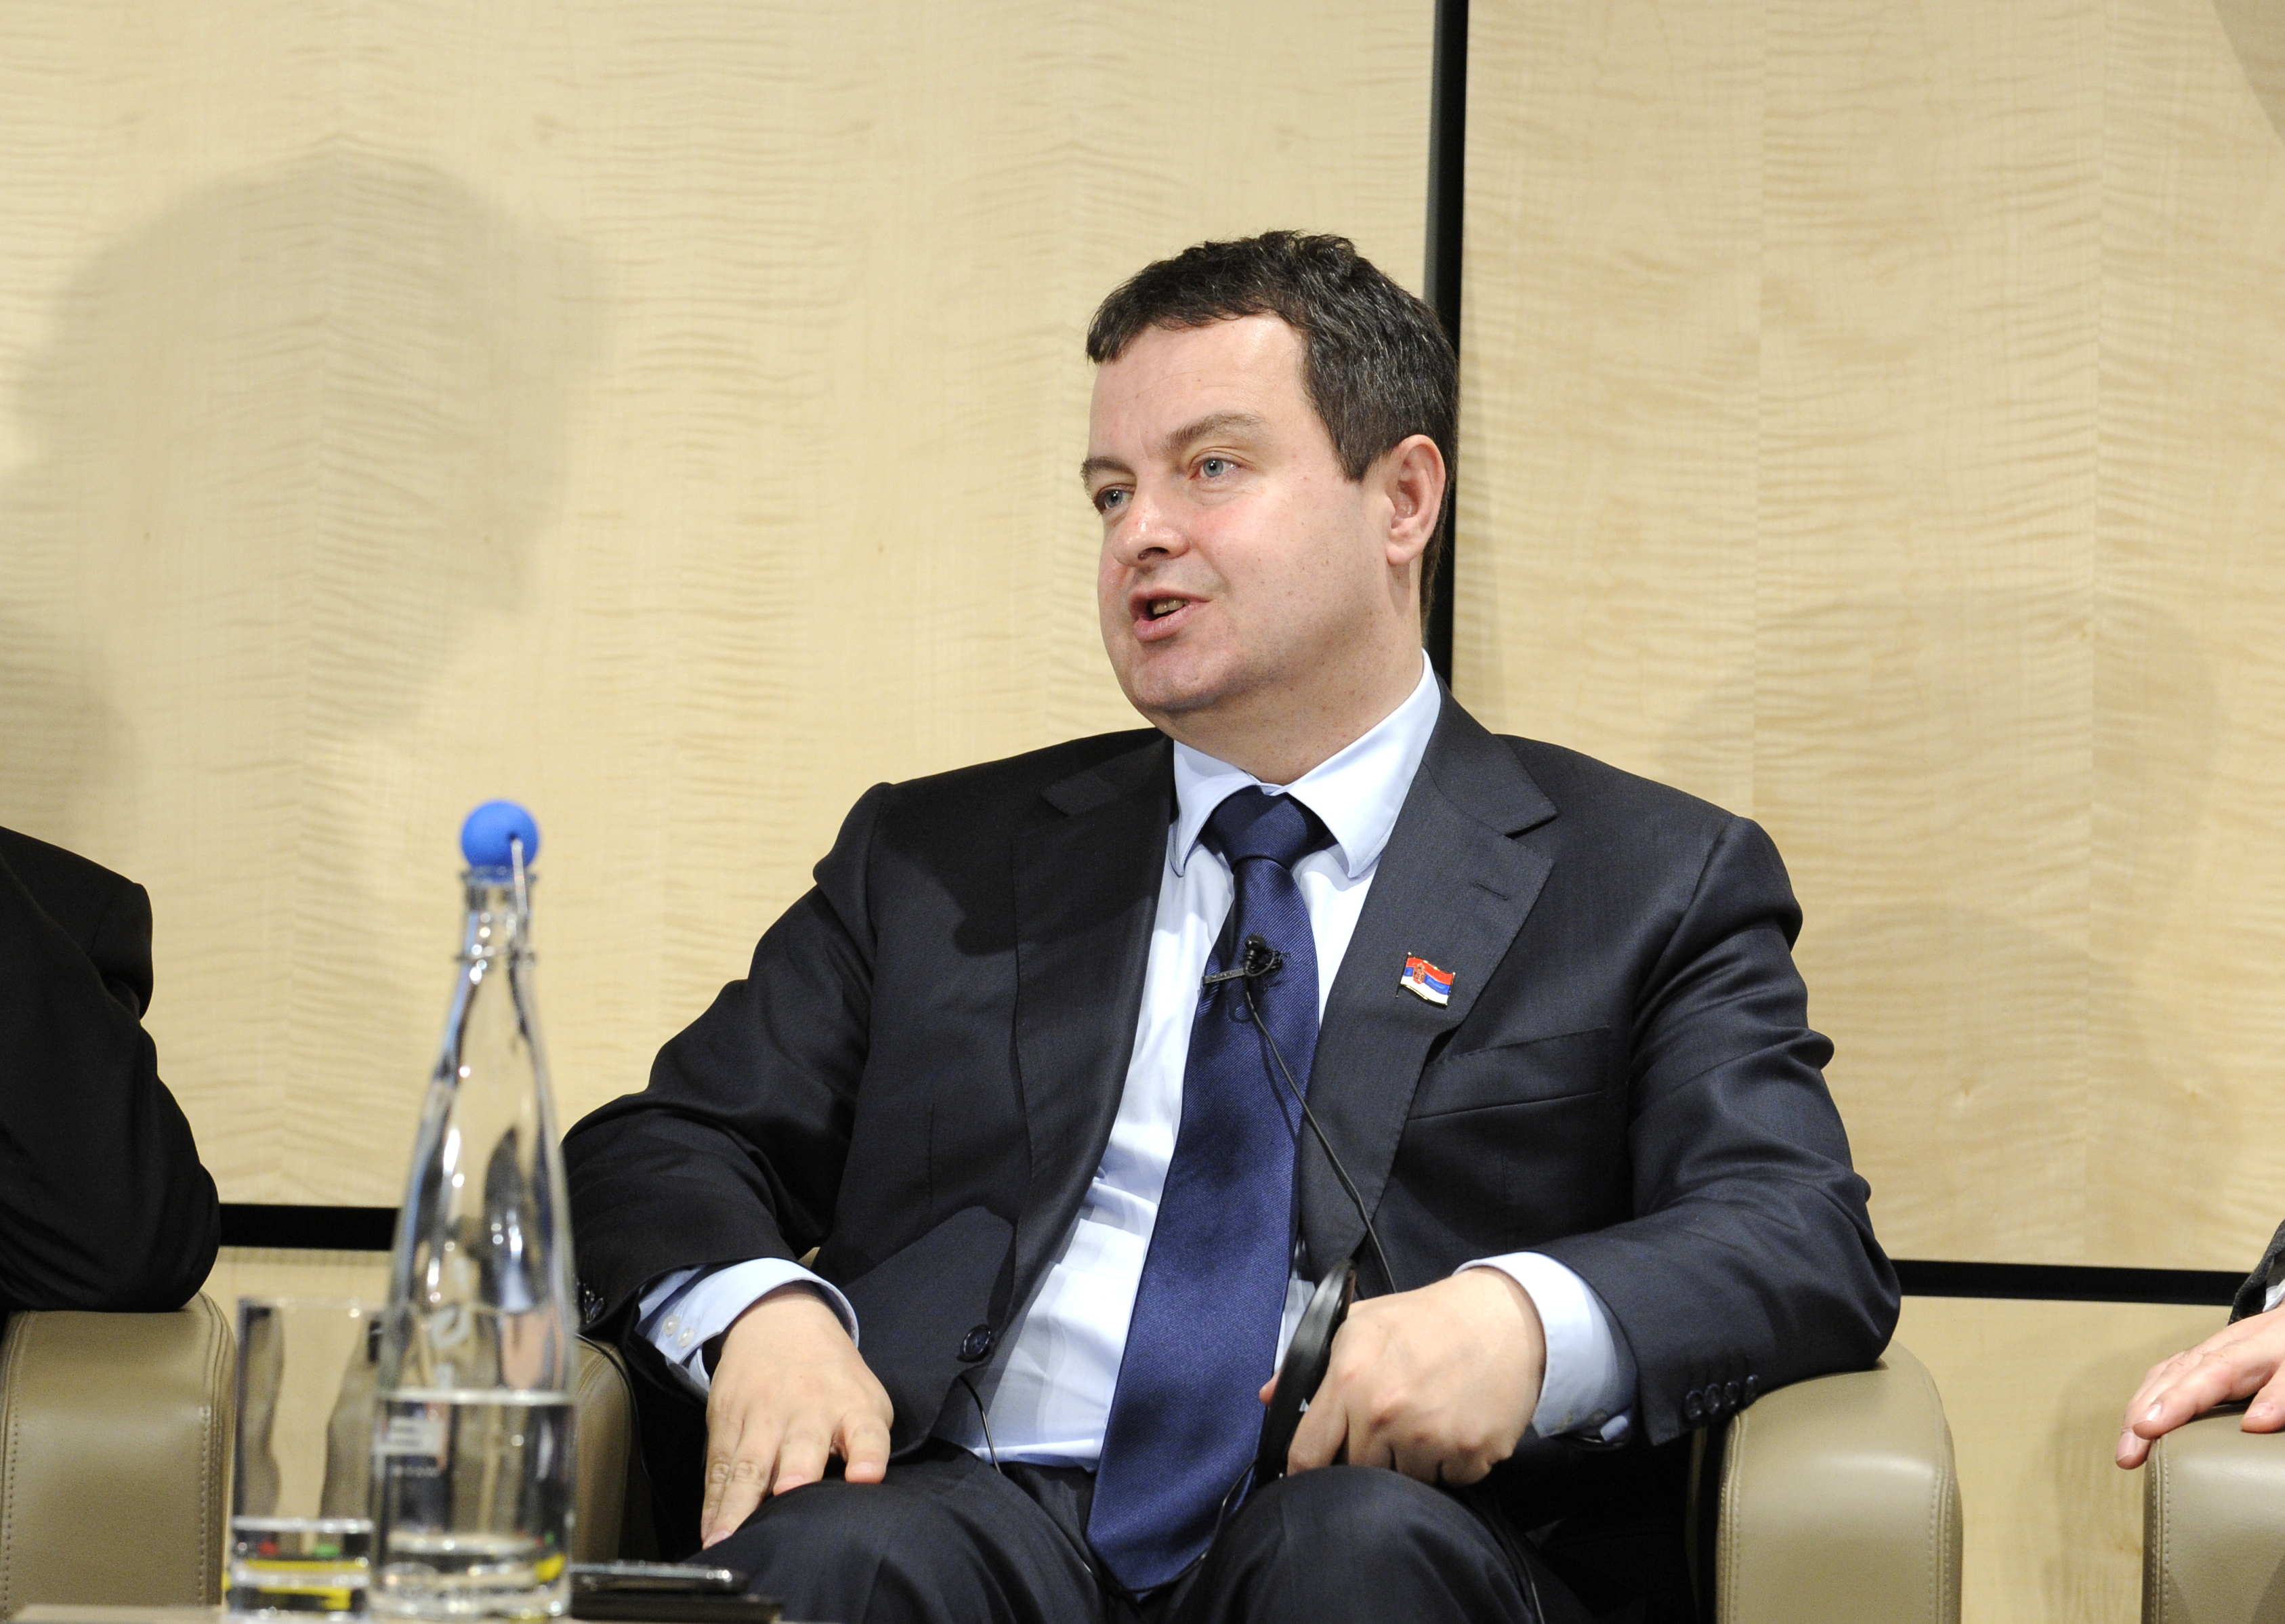 Ivica Dacic, Prime Minister of Serbia, at the Western Balkan Investment Forum (via EBRD)